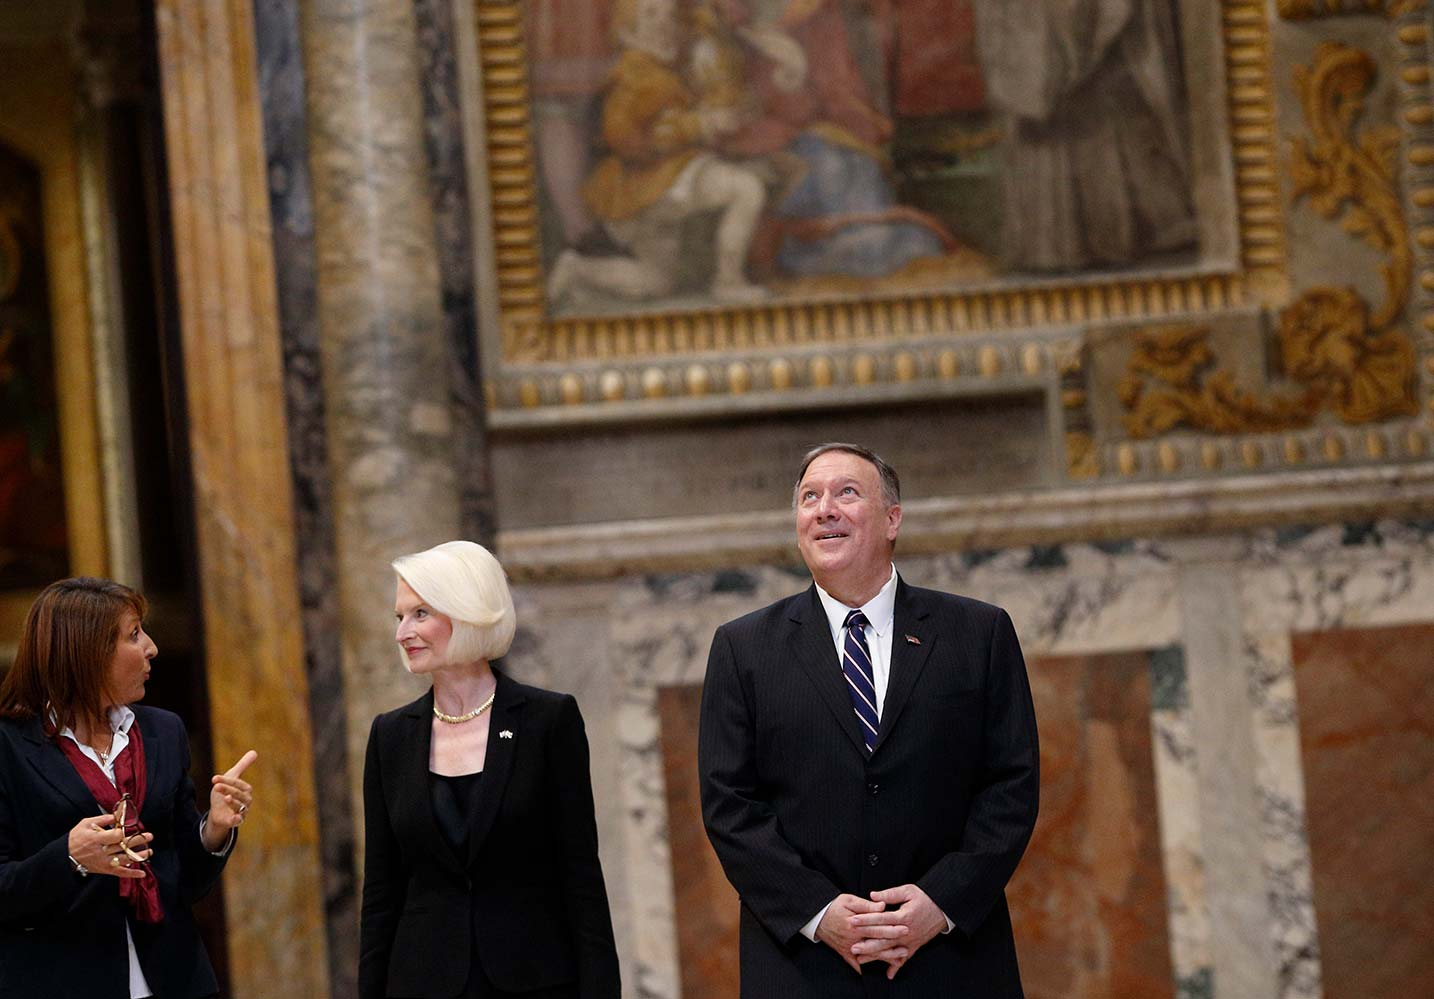 U.S. Secretary of State Mike Pompeo, and Callista Gingrich, U.S. ambassador to the Vatican, listen to a tour guide as they visit the Sala Regia at the Vatican Oct. 2, 2019. Secretary of State Pompeo toured the Vatican after speaking at a symposium sponsored by the U.S. Embassy to the Holy See at the Vatican. The symposium focused on areas of collaboration between the U.S. and the Vatican including the causes of advancing religious freedom and fighting against human trafficking. (CNS photo/Paul Haring)